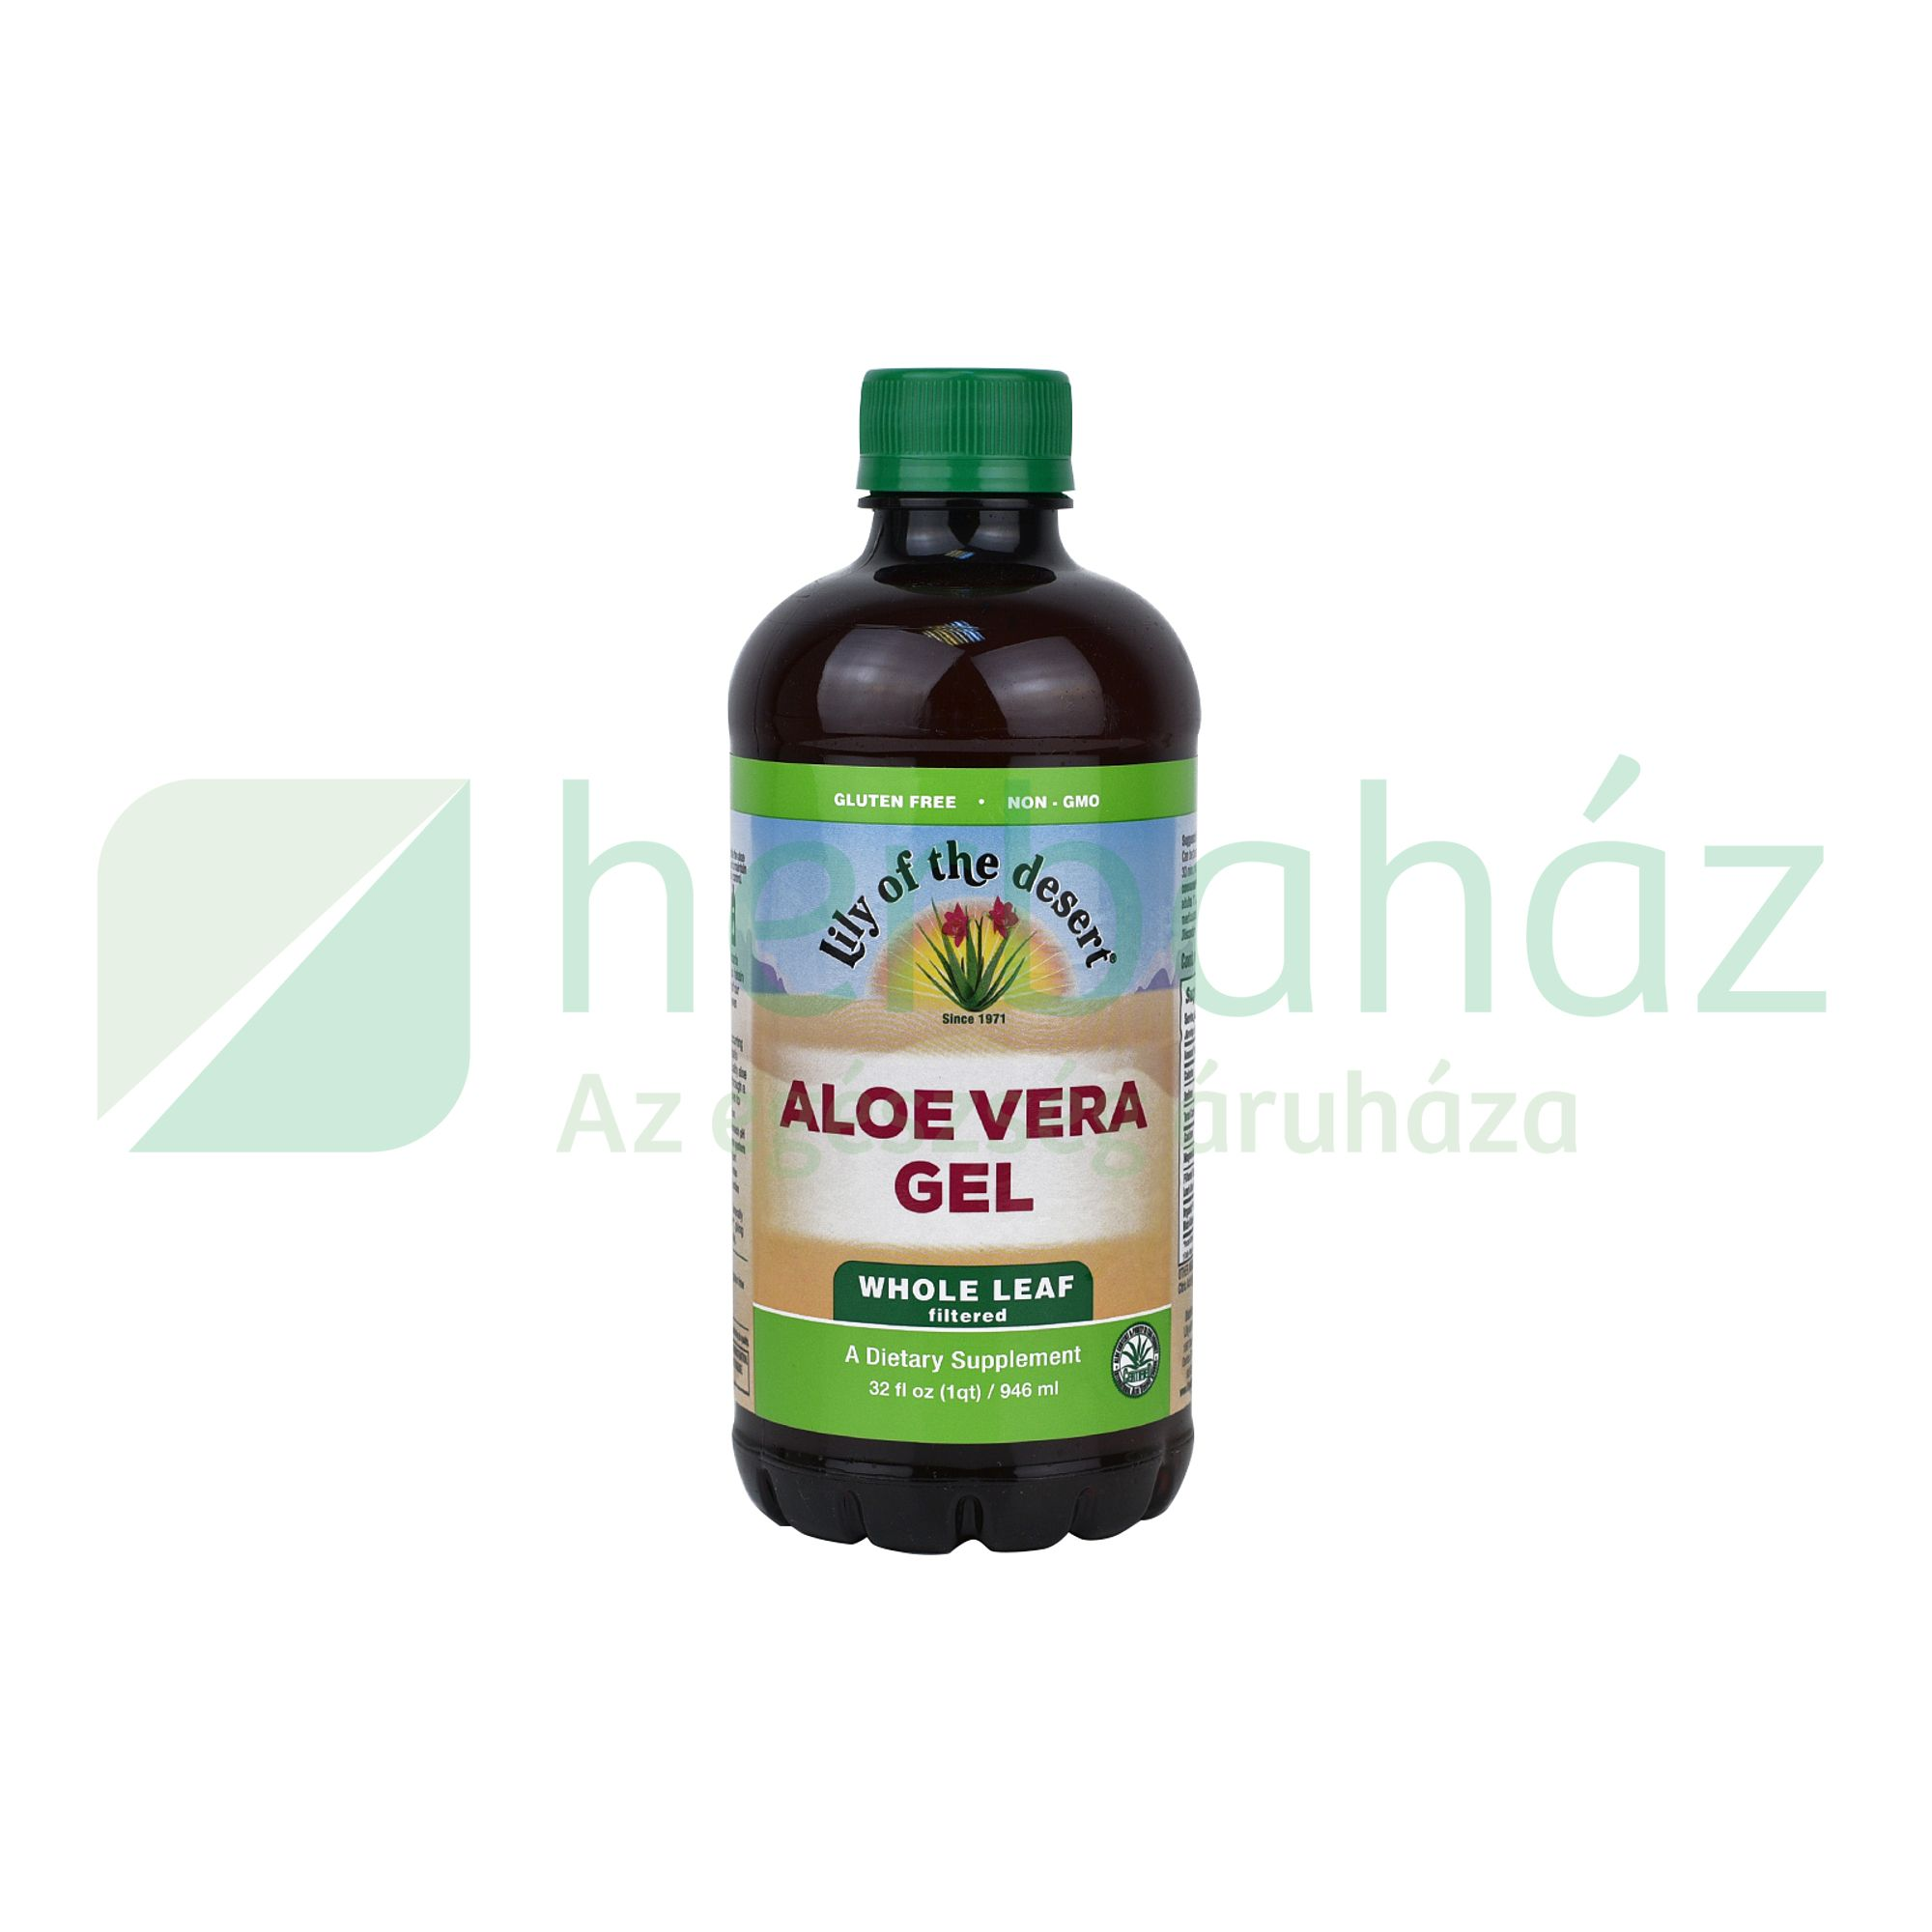 LILY ALOE VERA GÉL WHOLE LEAF 946ML